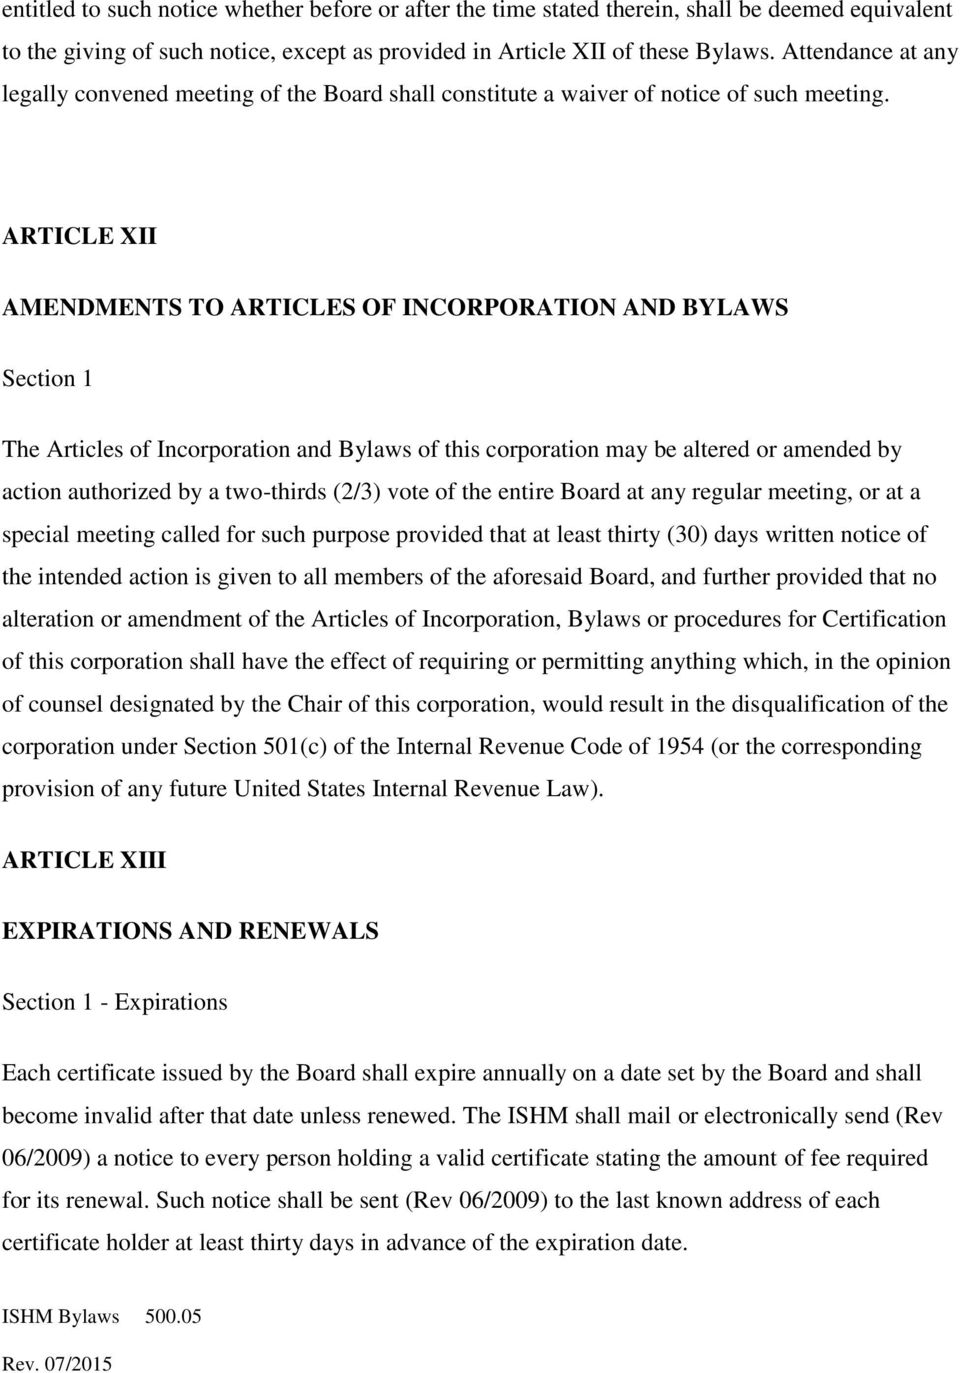 ARTICLE XII AMENDMENTS TO ARTICLES OF INCORPORATION AND BYLAWS Section 1 The Articles of Incorporation and Bylaws of this corporation may be altered or amended by action authorized by a two-thirds